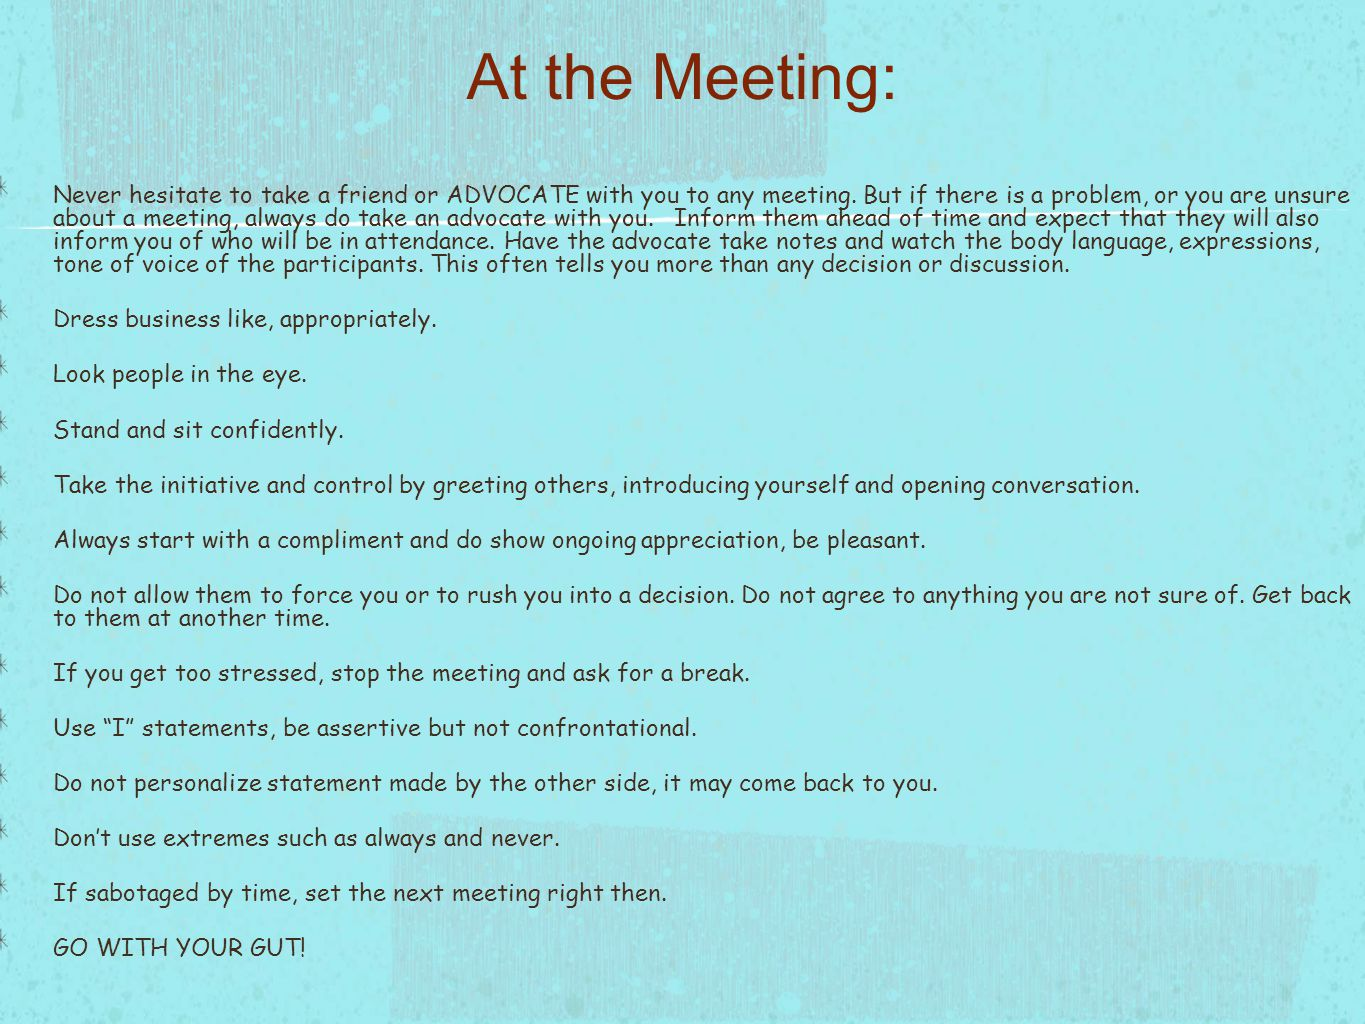 Never hesitate to take a friend or ADVOCATE with you to any meeting.